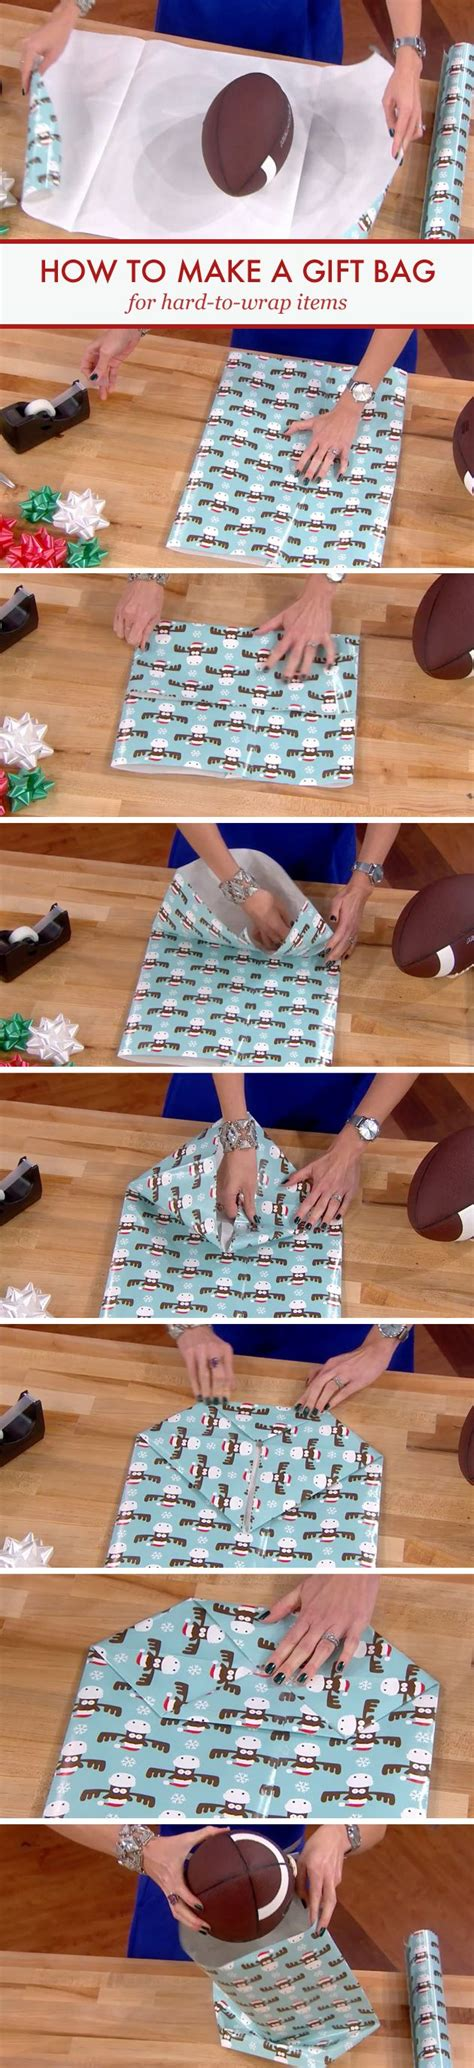 Paper Gifts To Make - how to make diy gift bags for to wrap items tip used